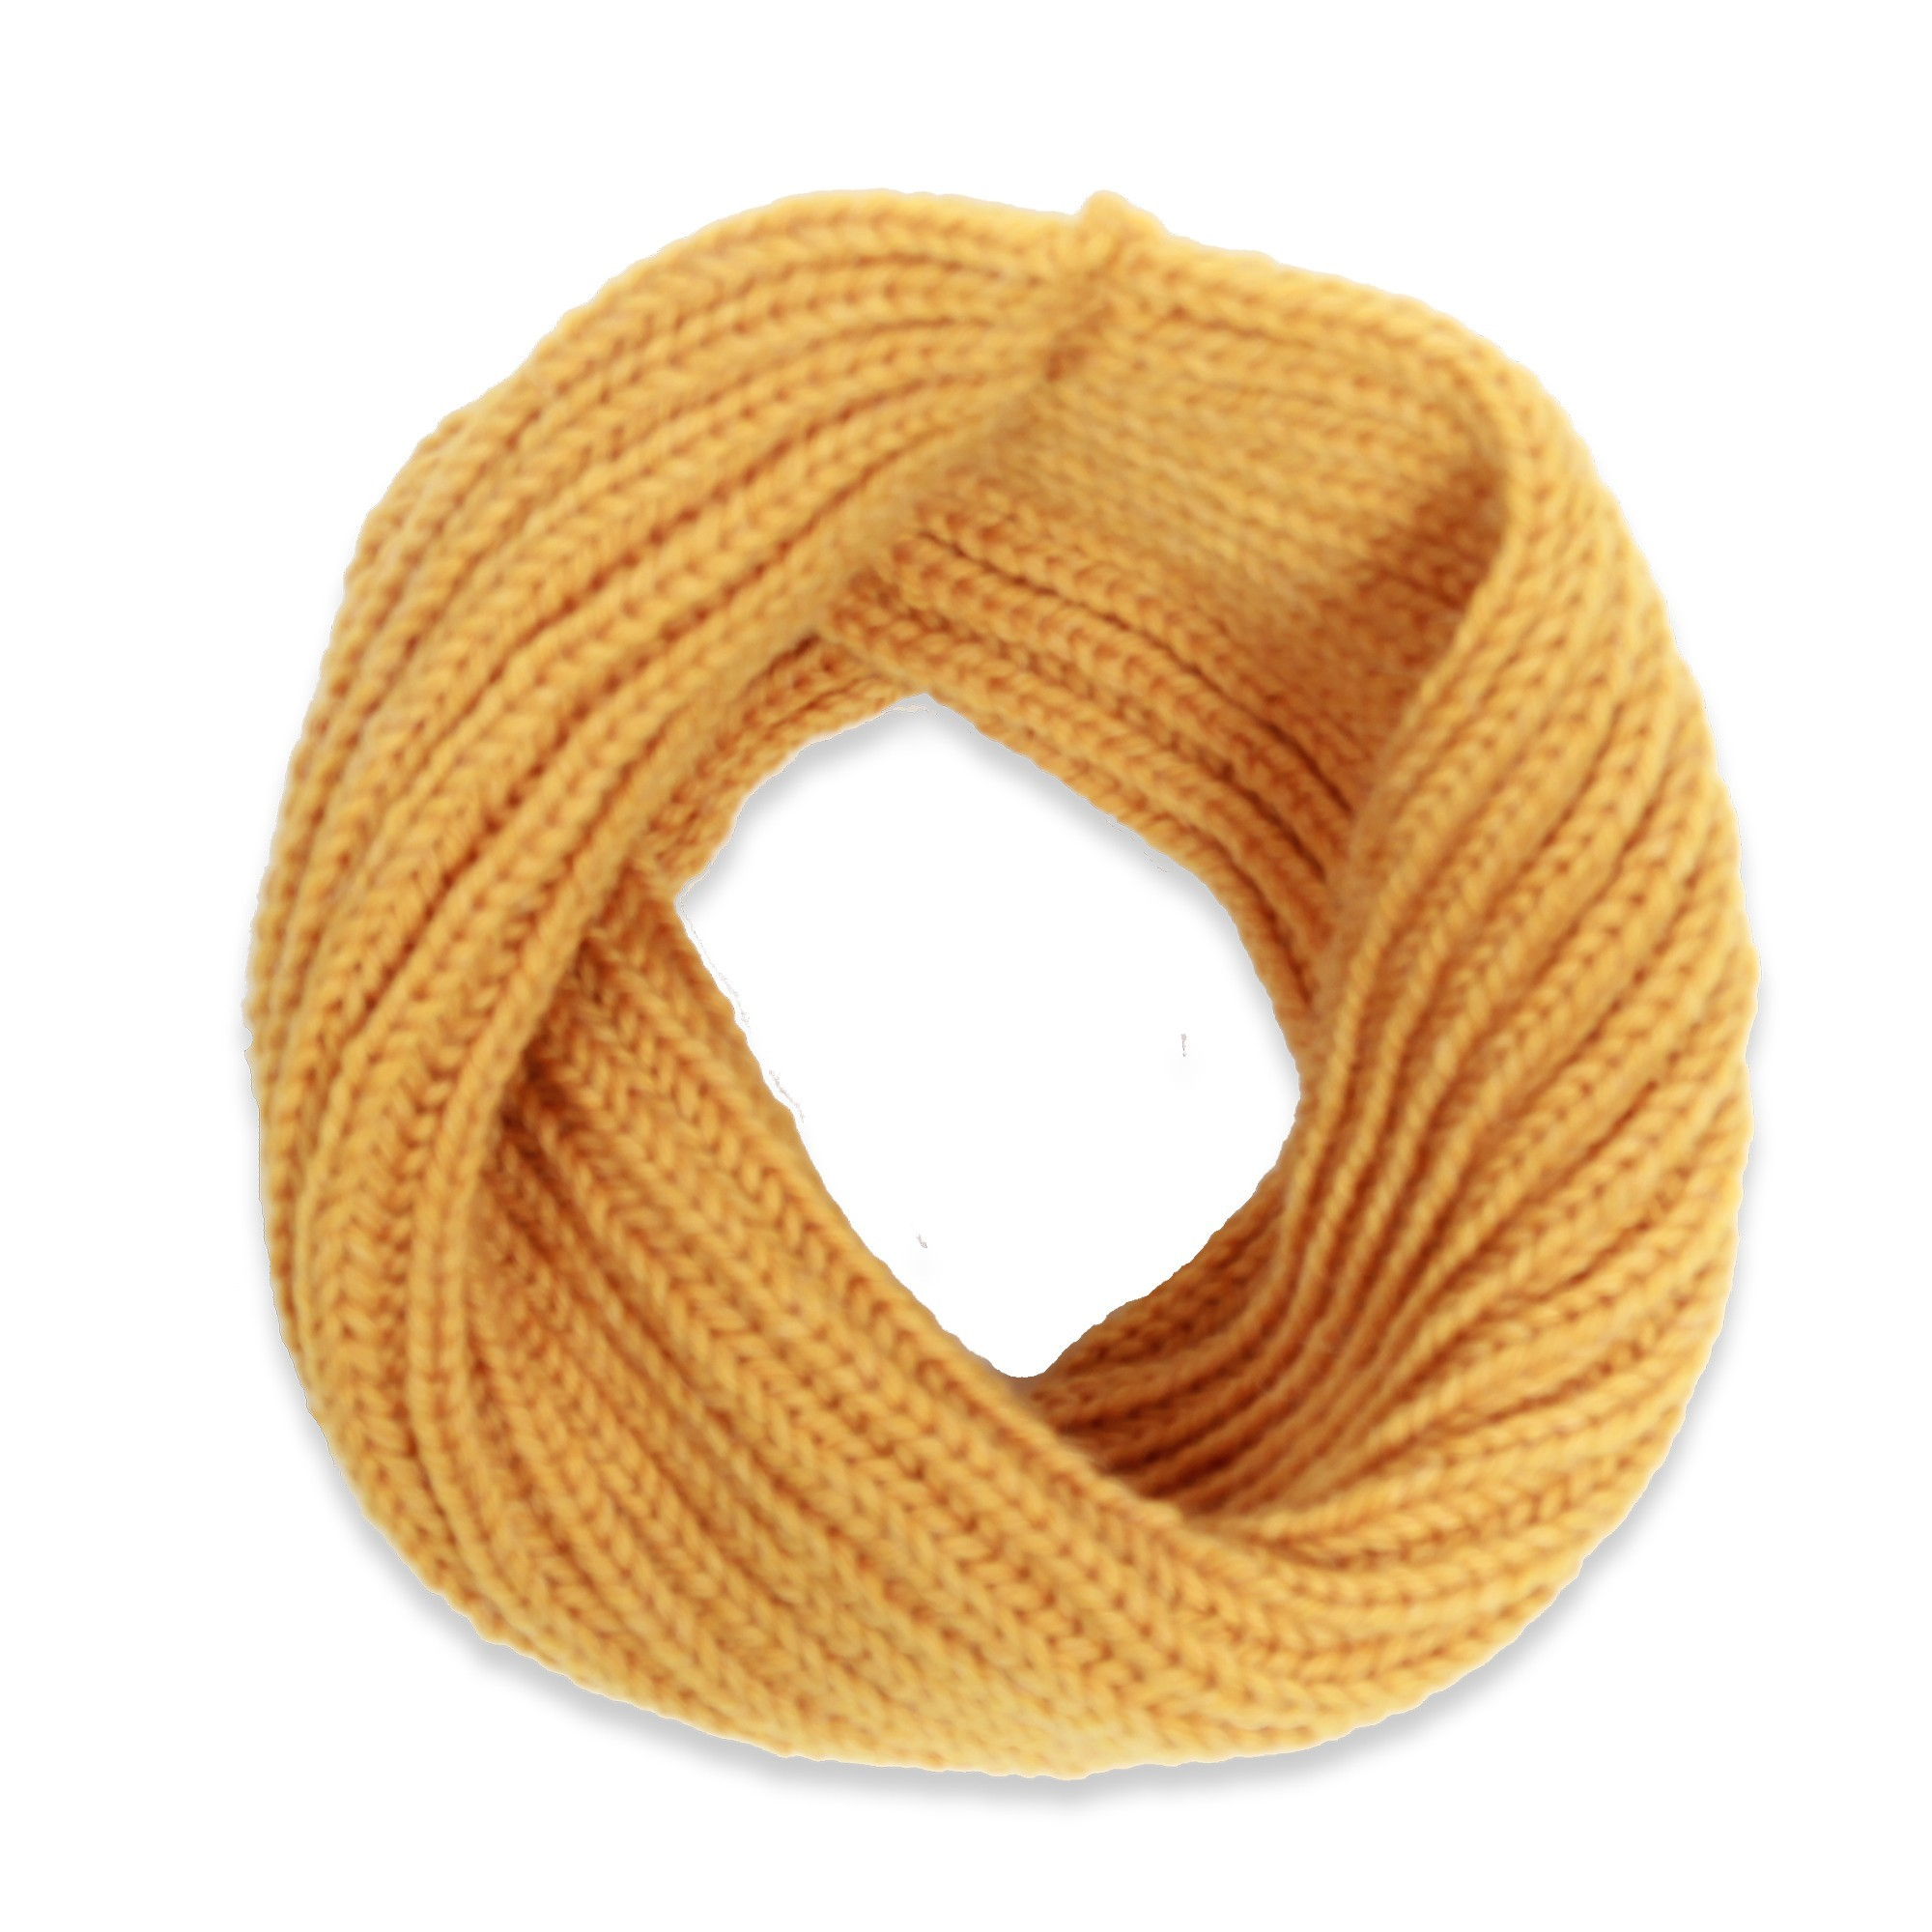 fd1d329c144f Granny s knitwear - Yellow snood scarf for kids made from wool and ...